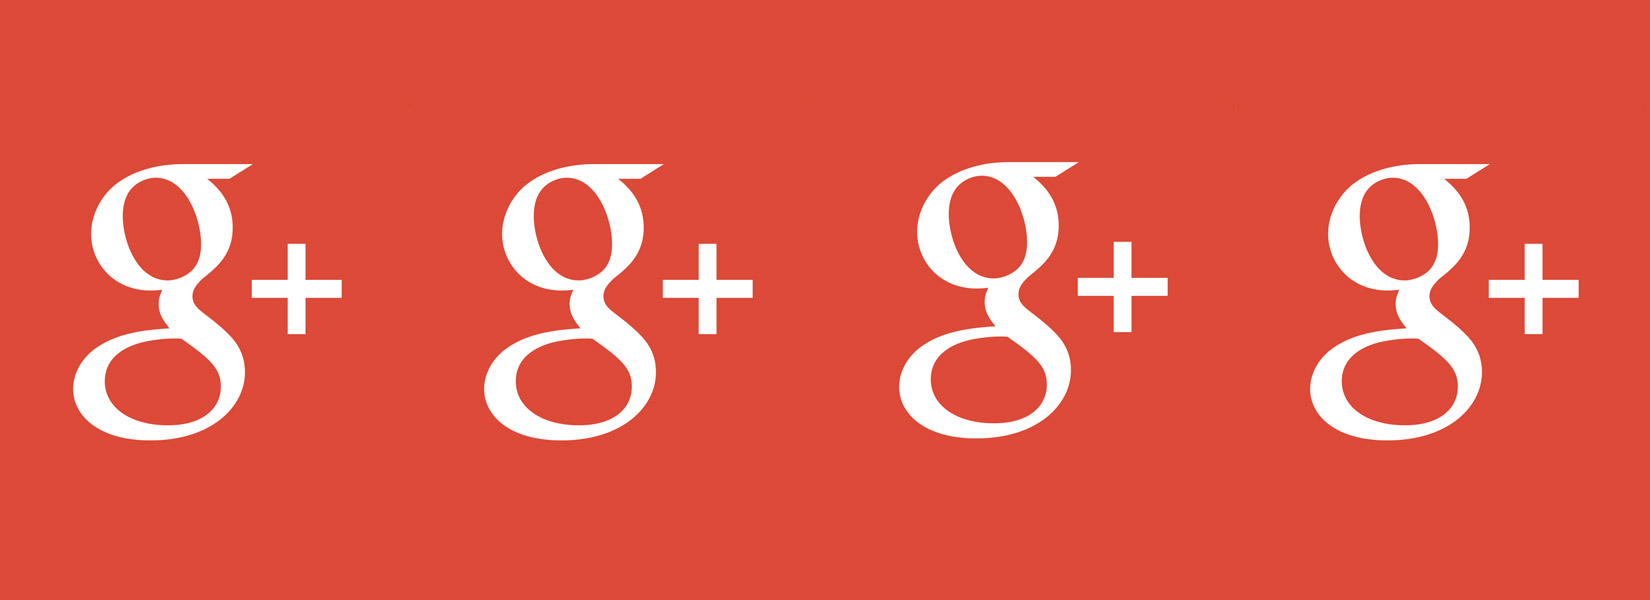 Where Can I Find The List Of Sites I've +1'ed in Google+?